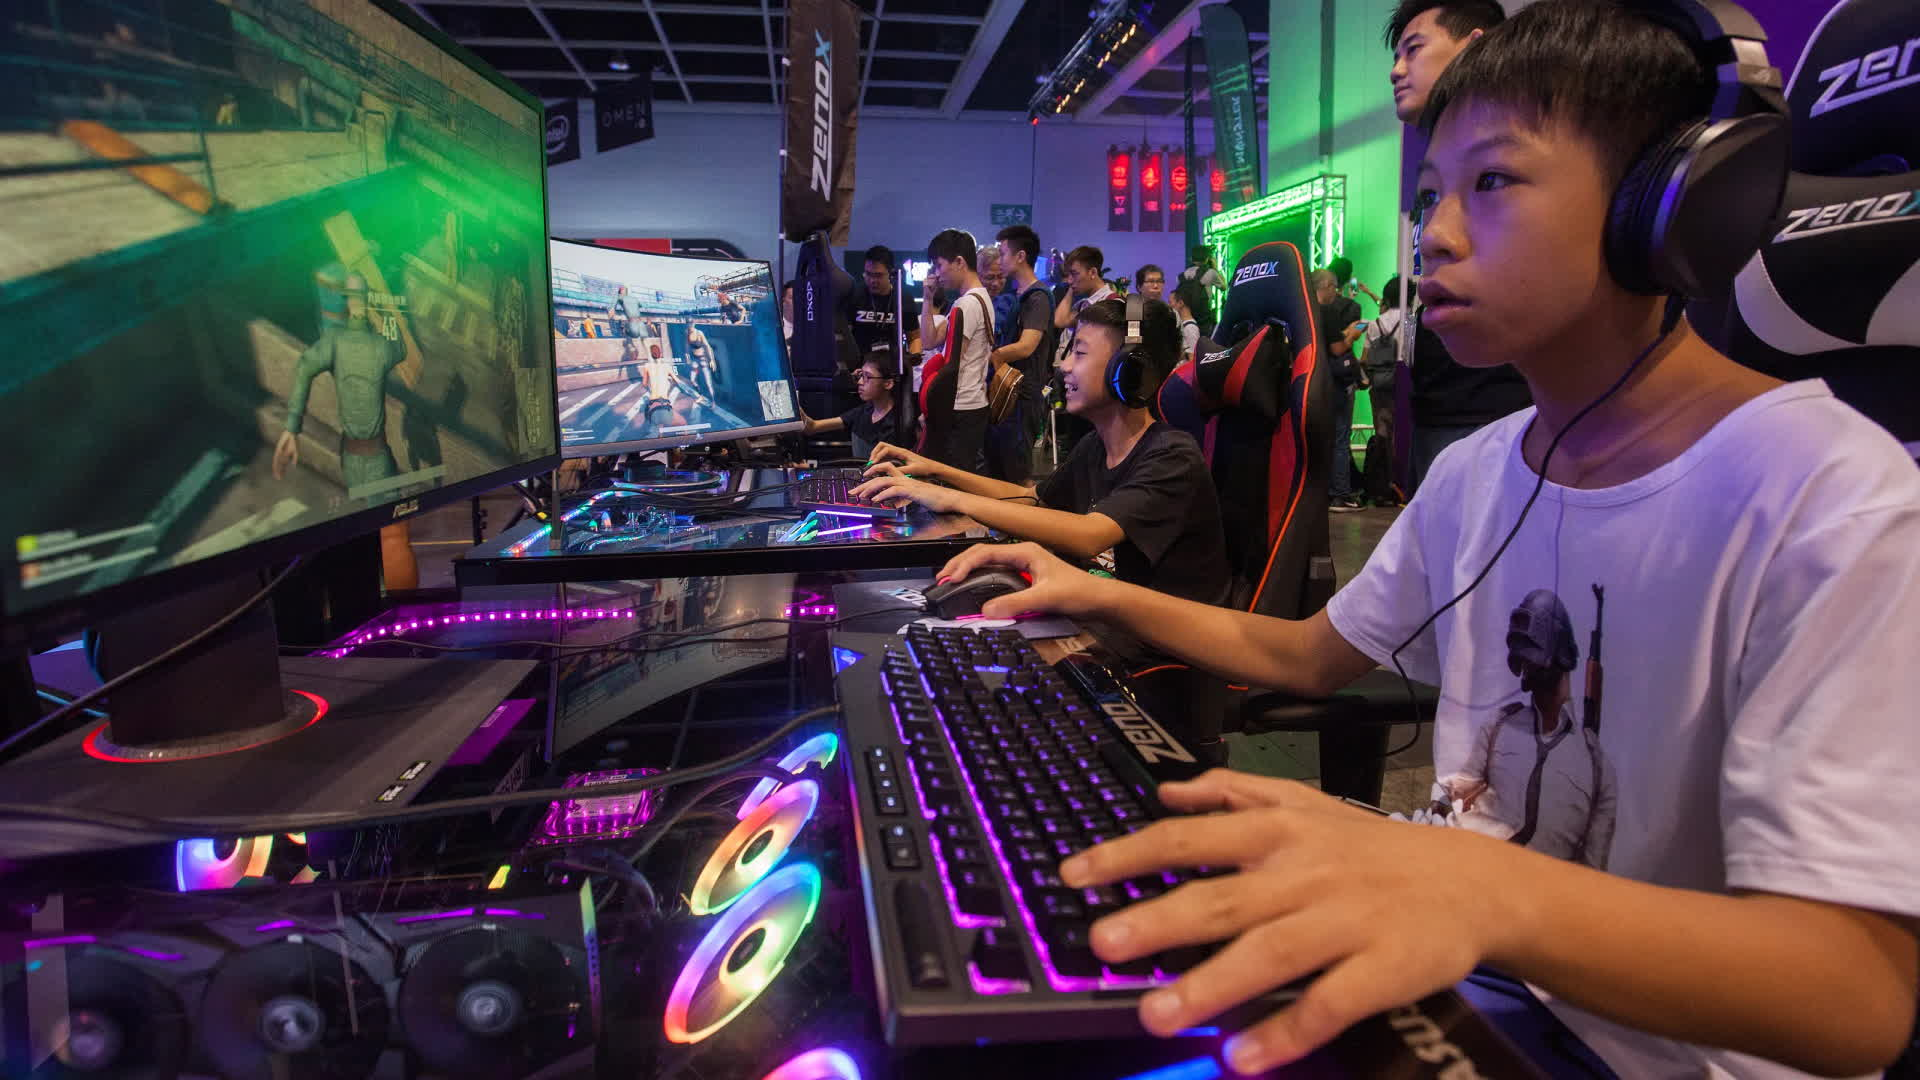 China bans children under 16 from livestreaming